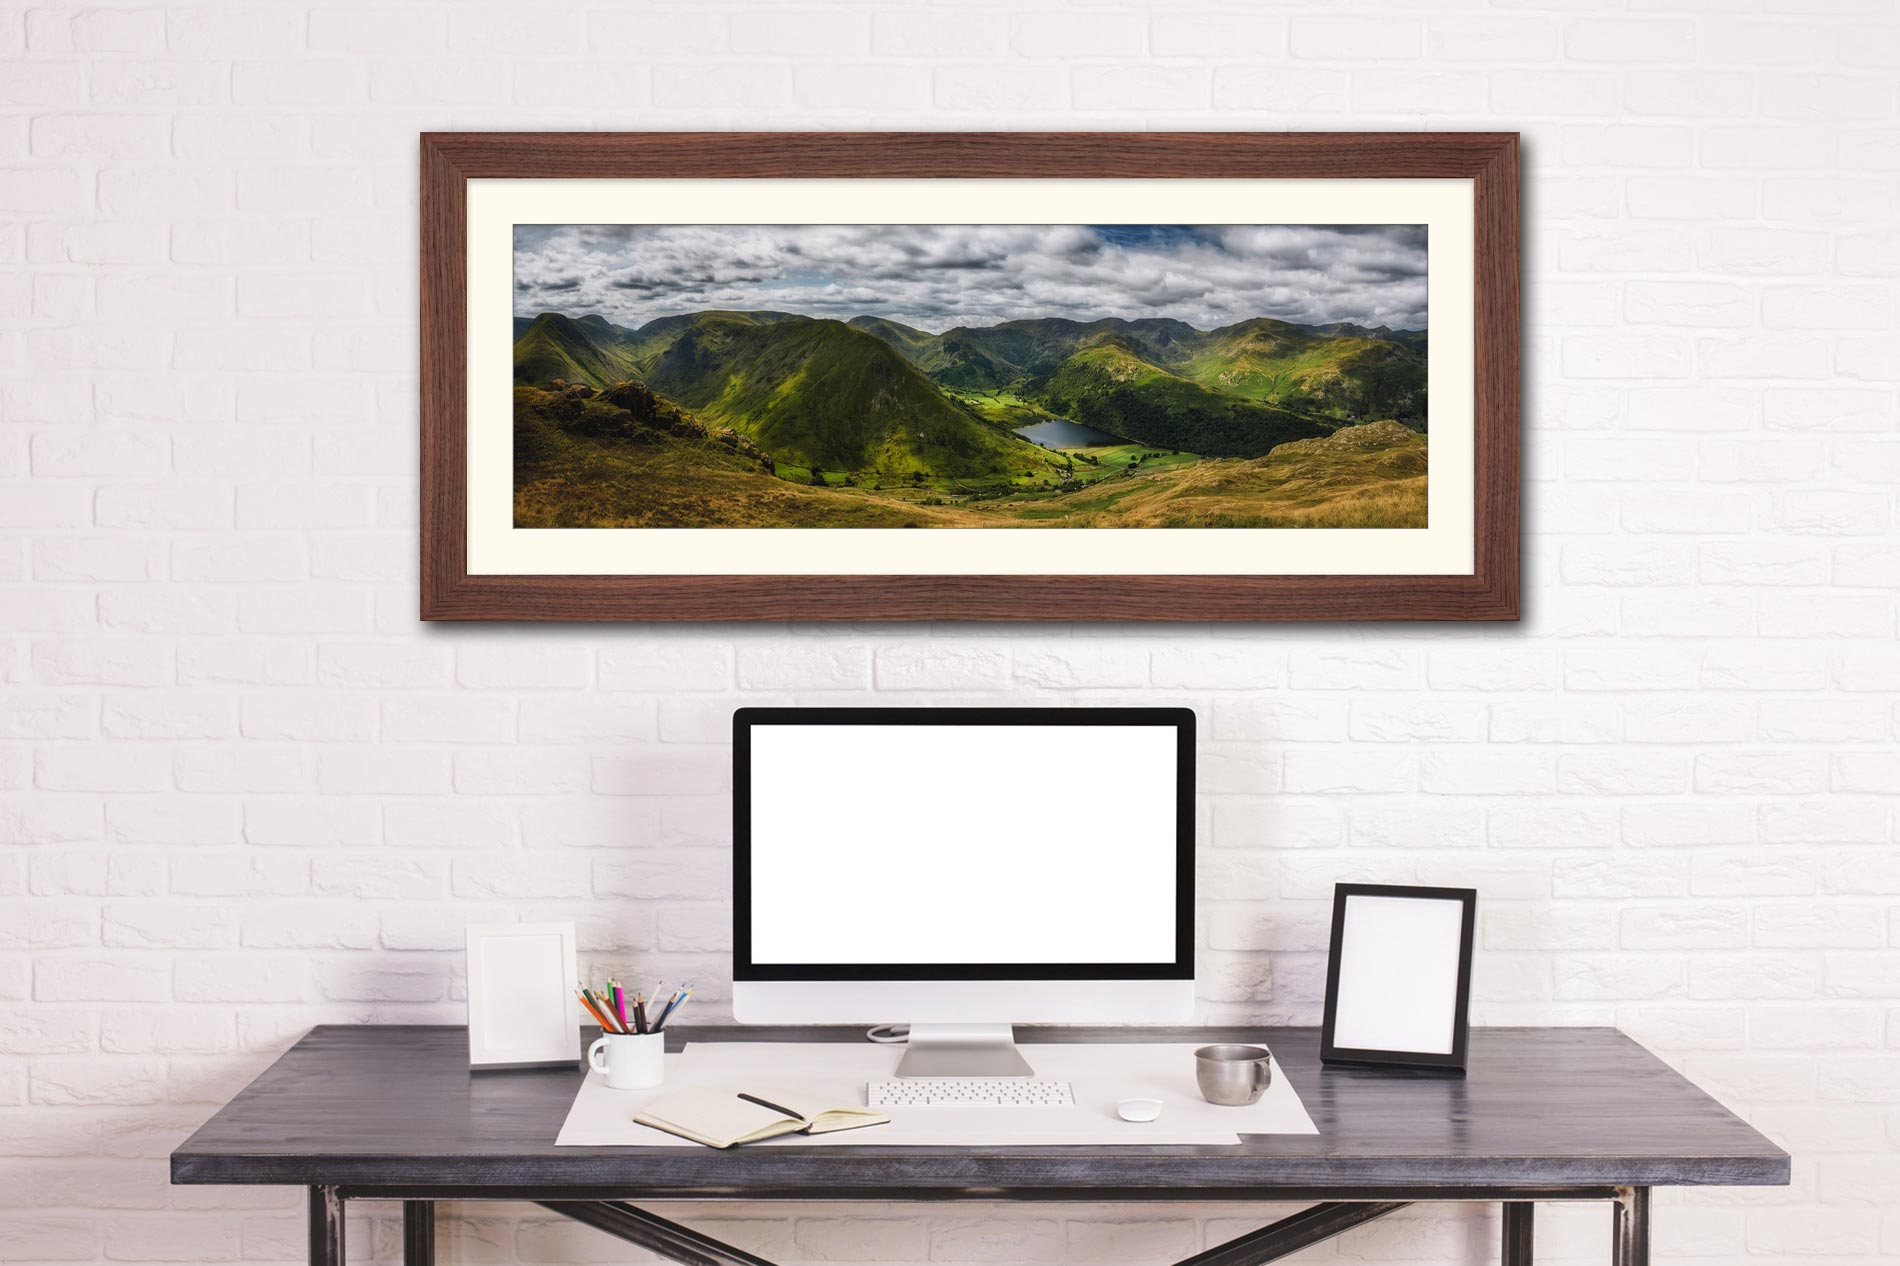 Satura Crag Panorama - Framed Print with Mount on Wall